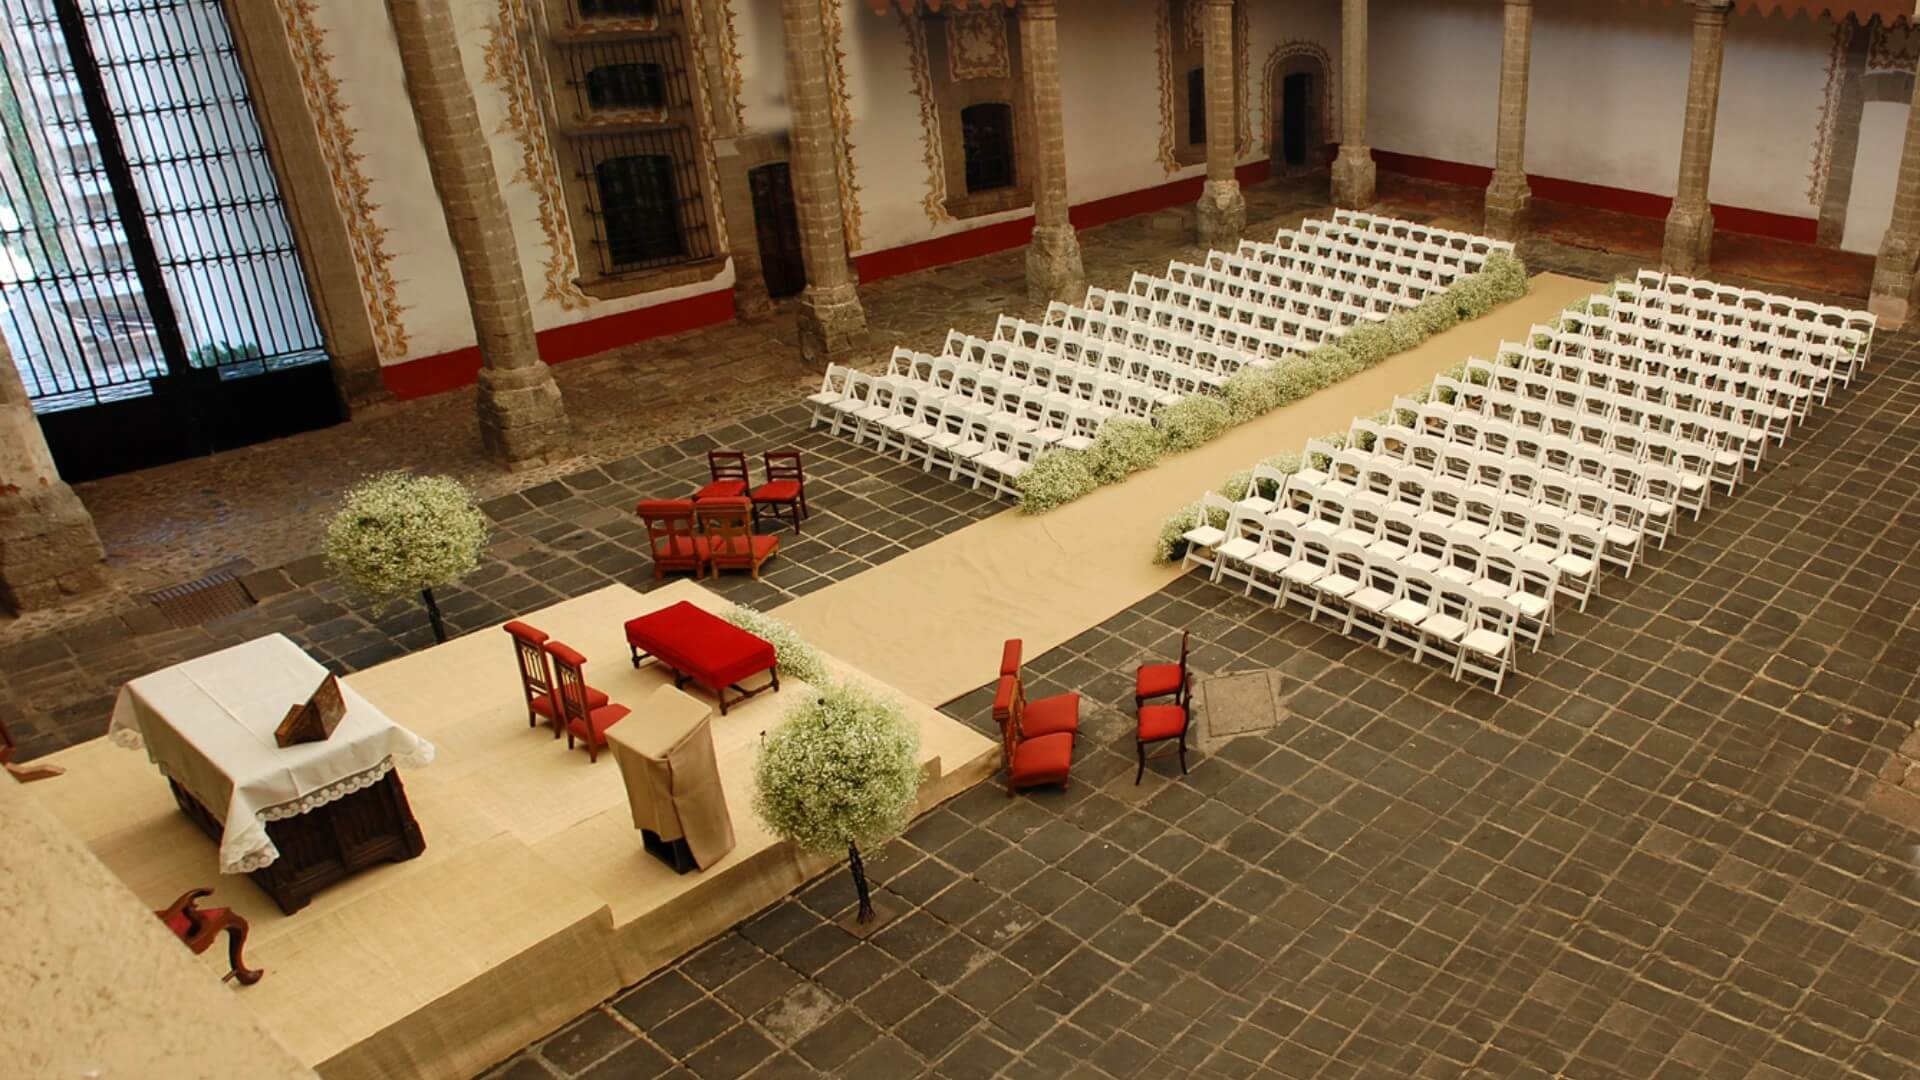 Patio Central Museo Hacienda de Santa Mónica